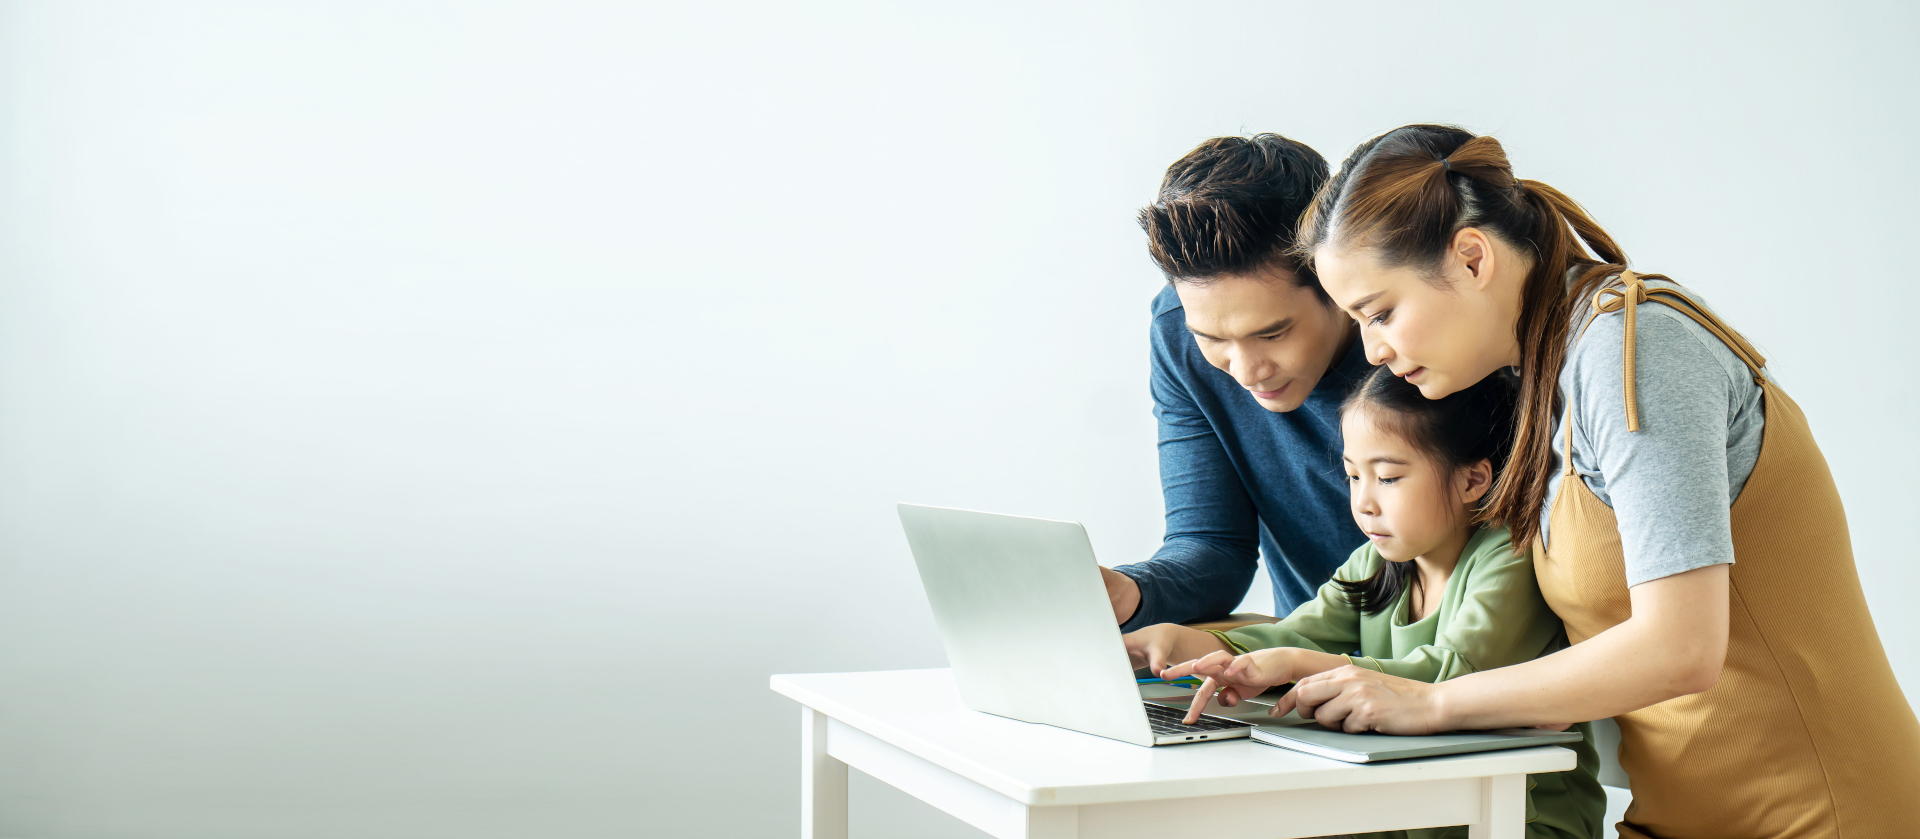 man, woman, and young girl looking at laptop